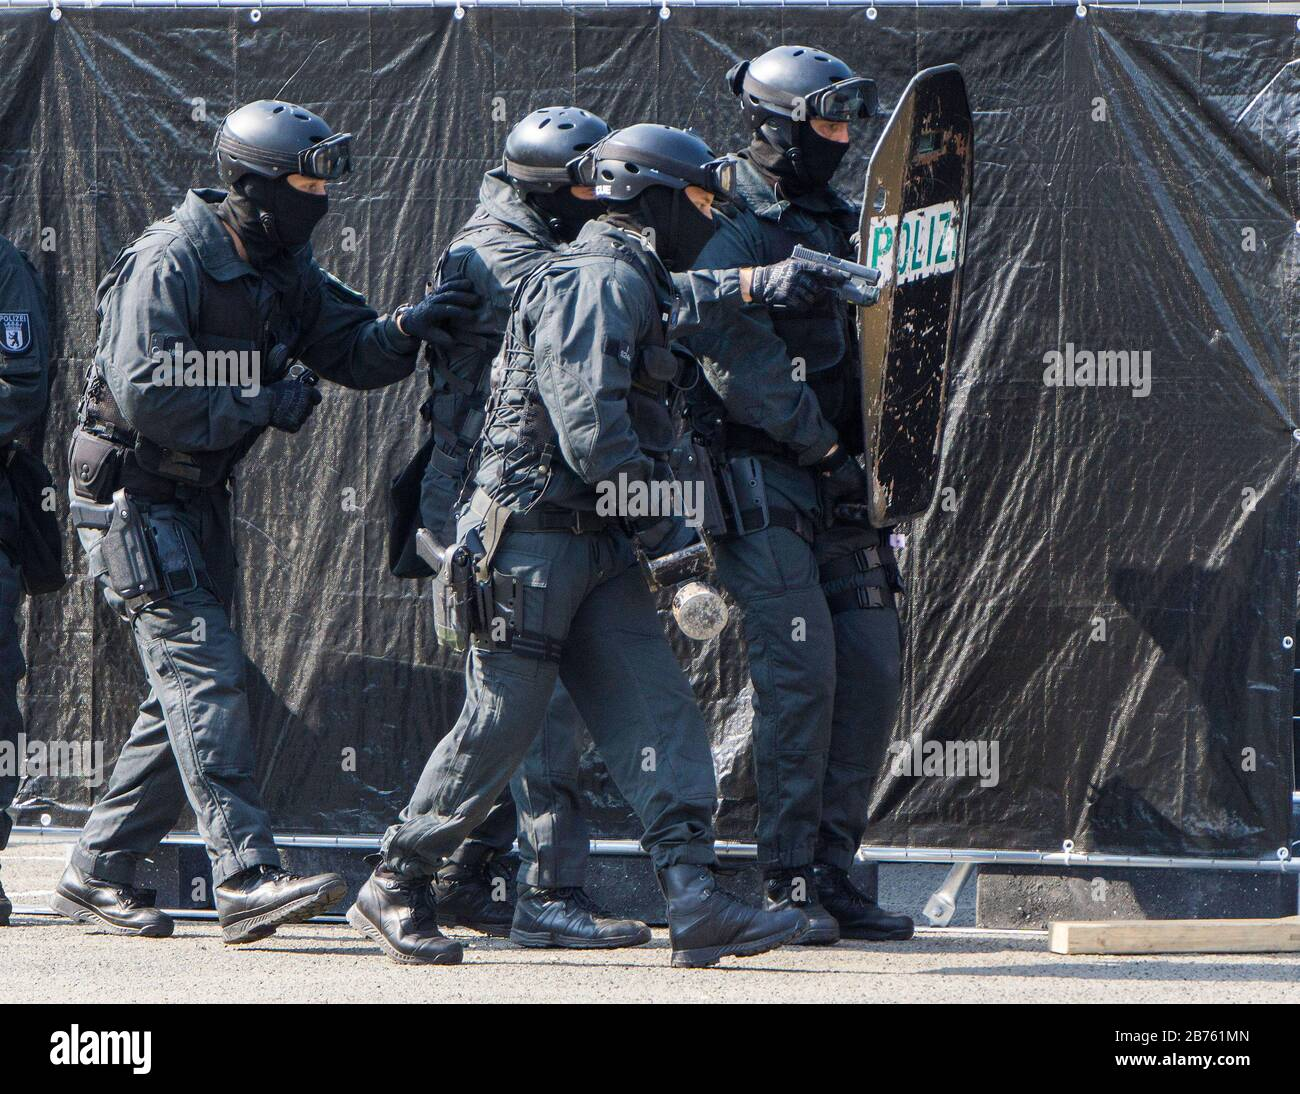 Police officers of the Berlin special task force, SEK, simulated an attack on 11.09.2016. The SEK presented its work during the open day at the Berlin state police school. [automated translation] Stock Photo